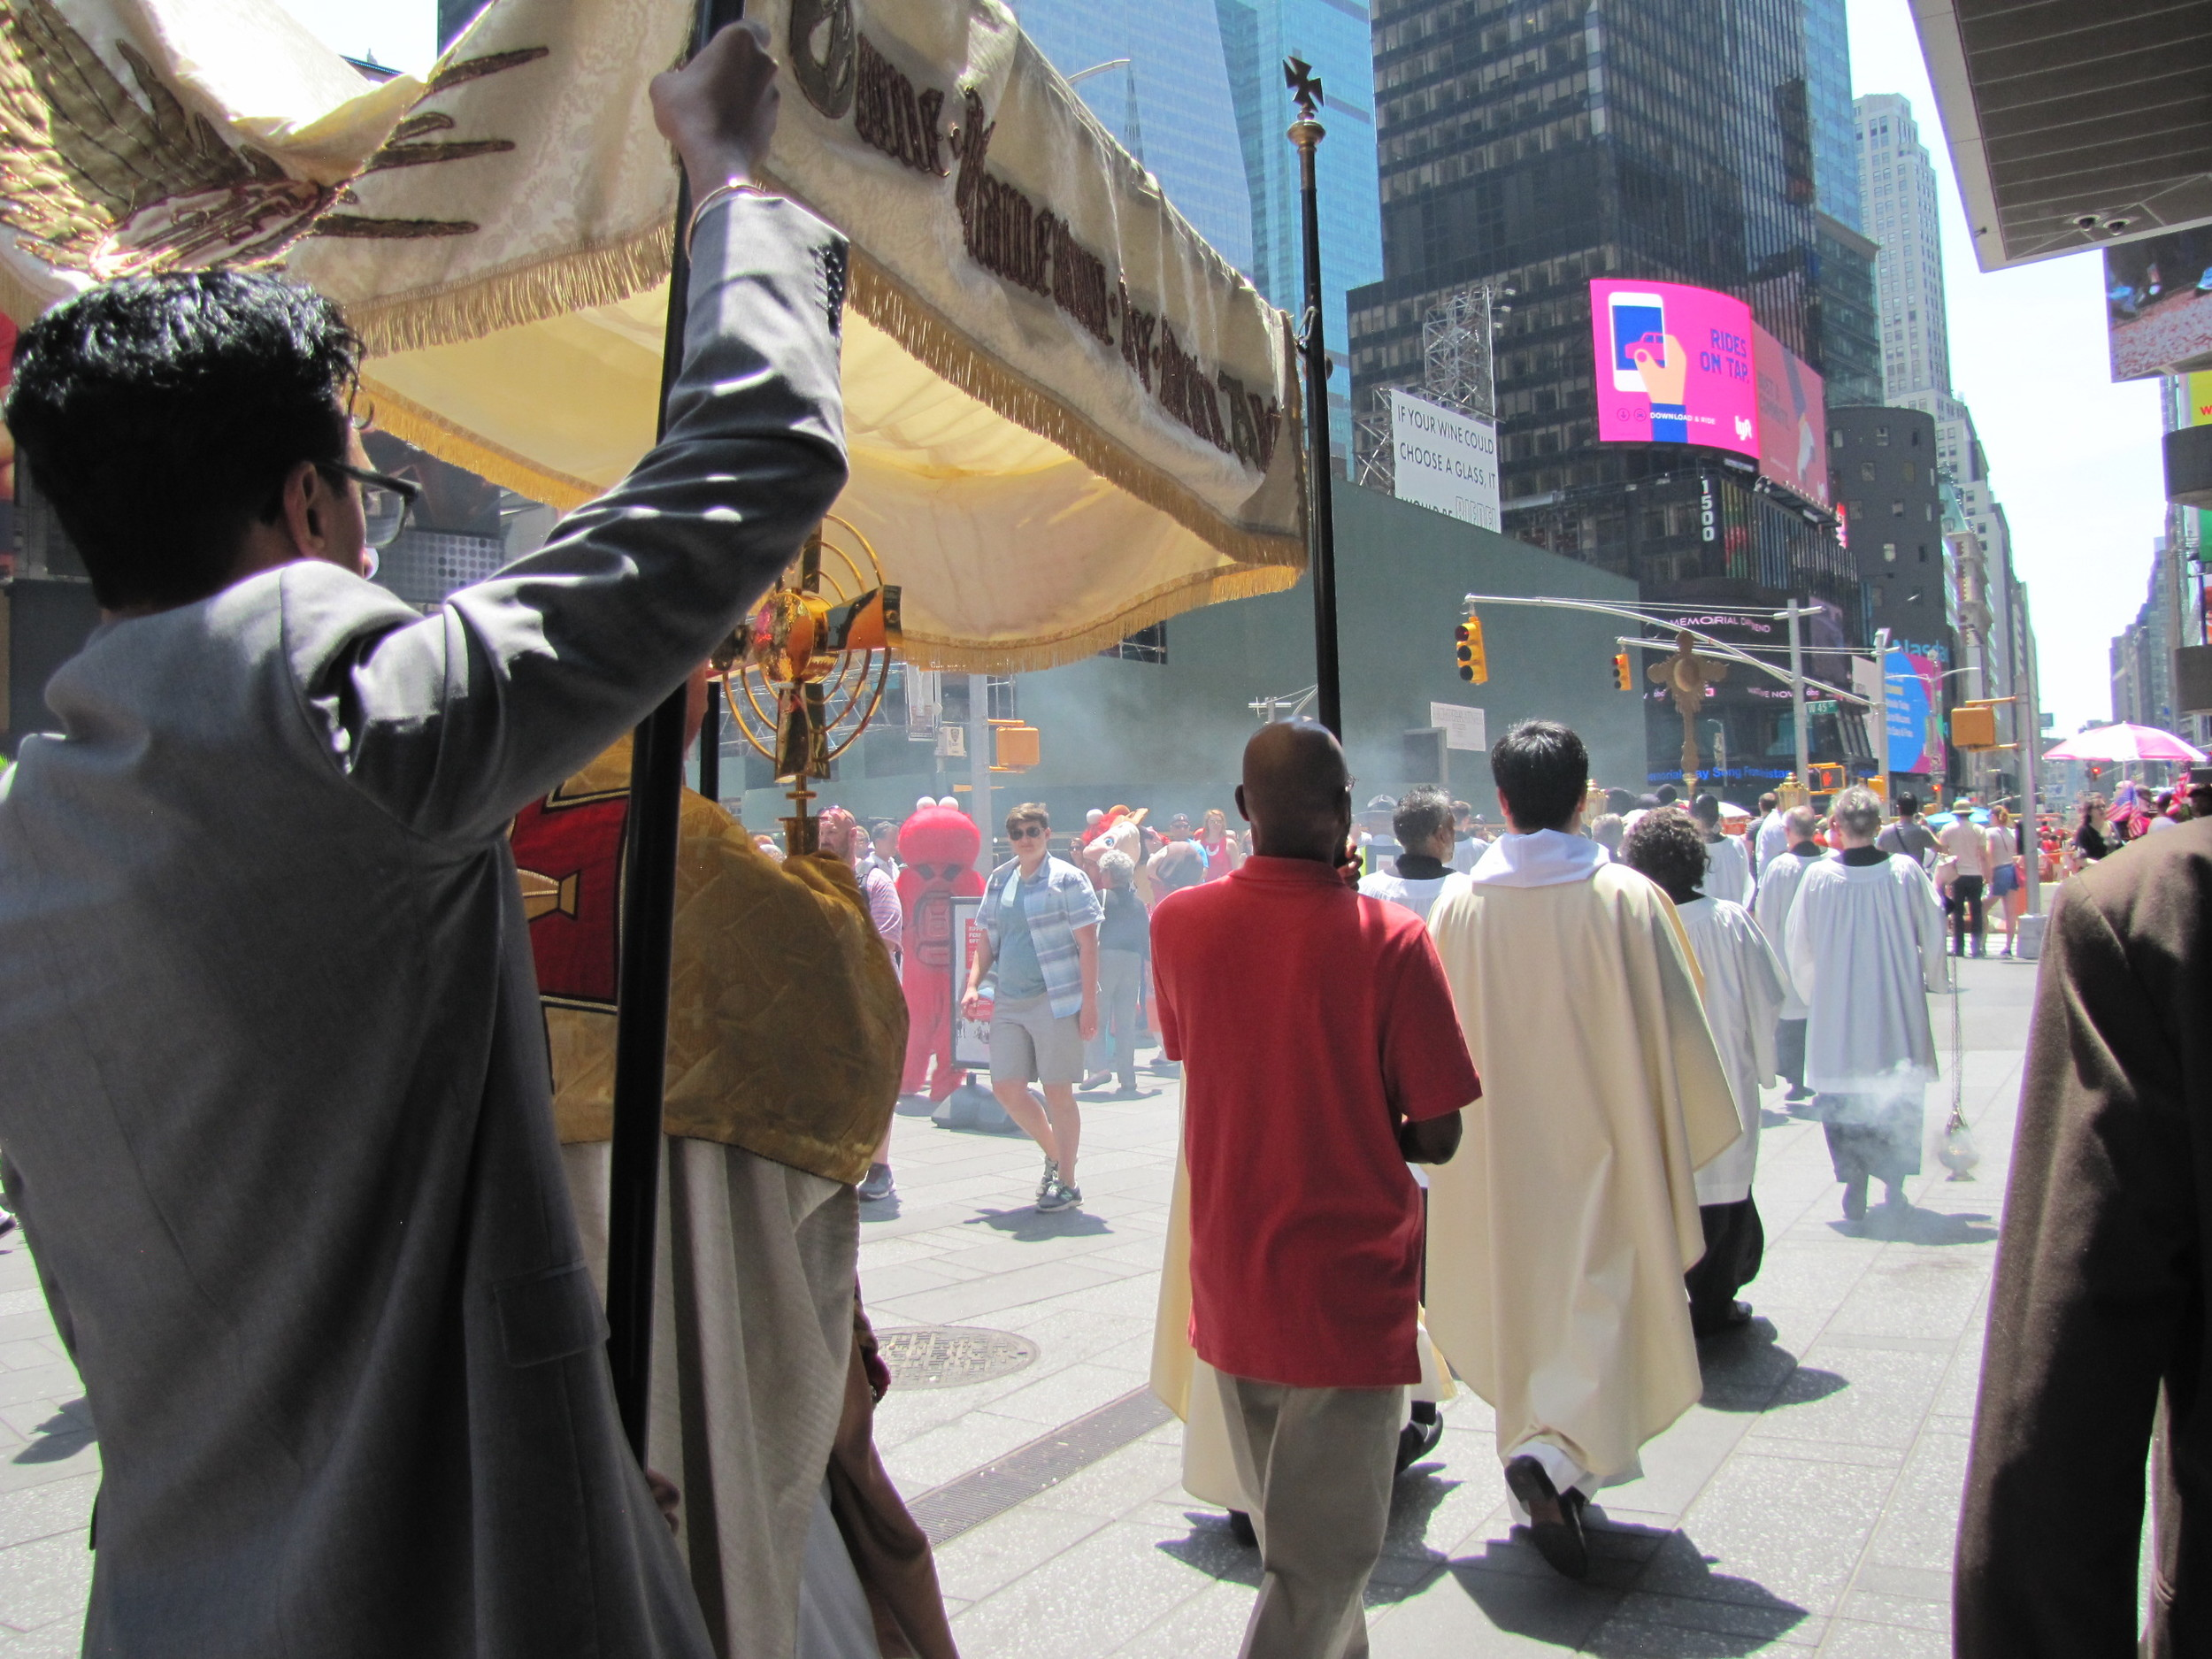 The Corpus Christi processional through Times Square